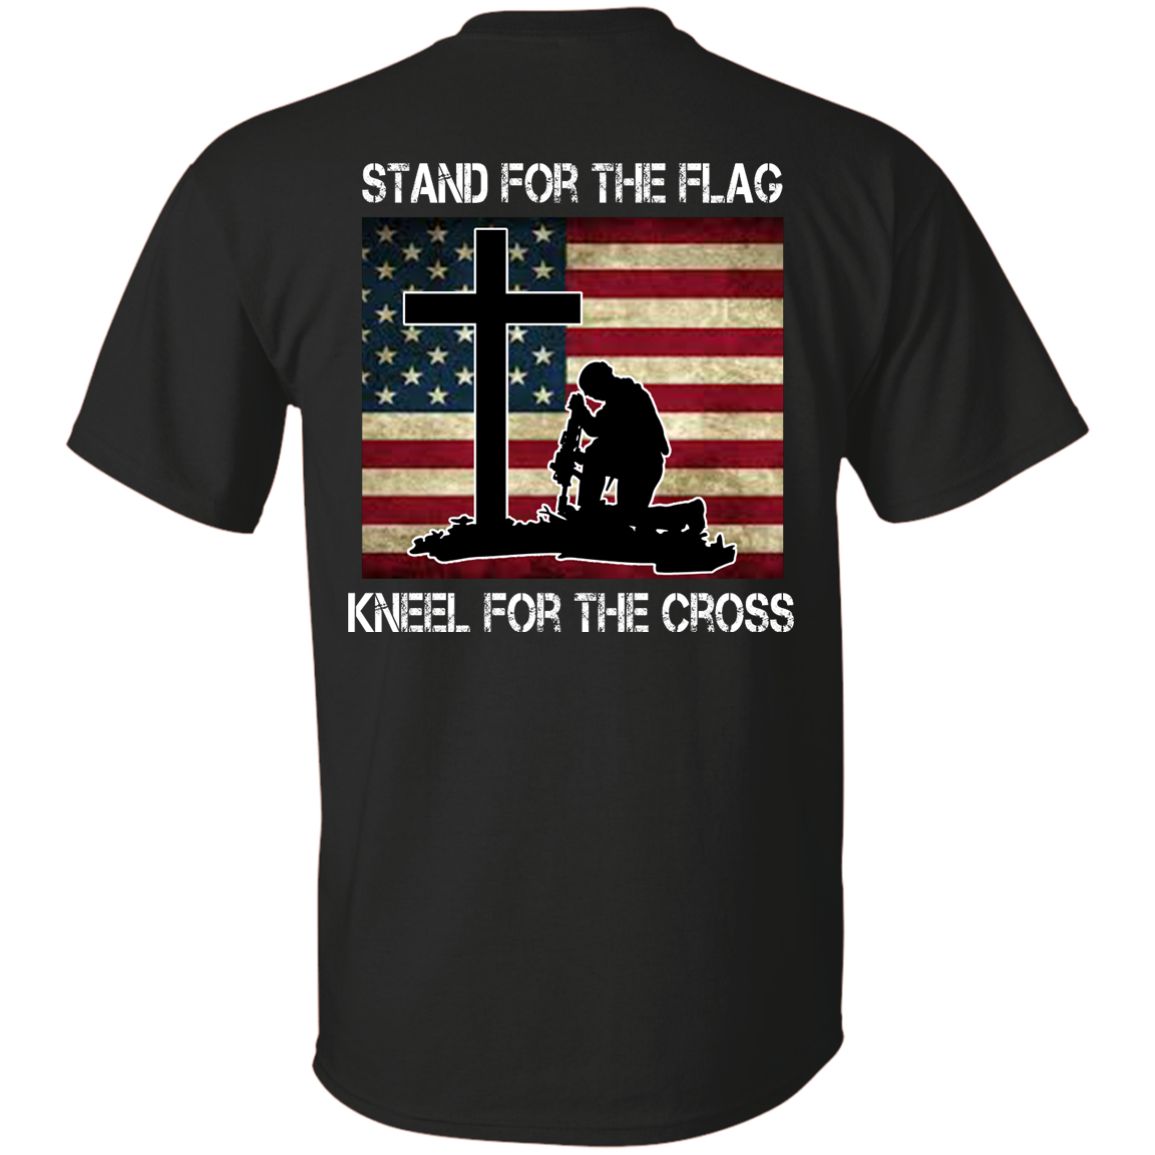 Shirt with cross clipart transparent library Stand for the Flag, Kneel for the Cross T-shirt Back Side | Pinterest transparent library